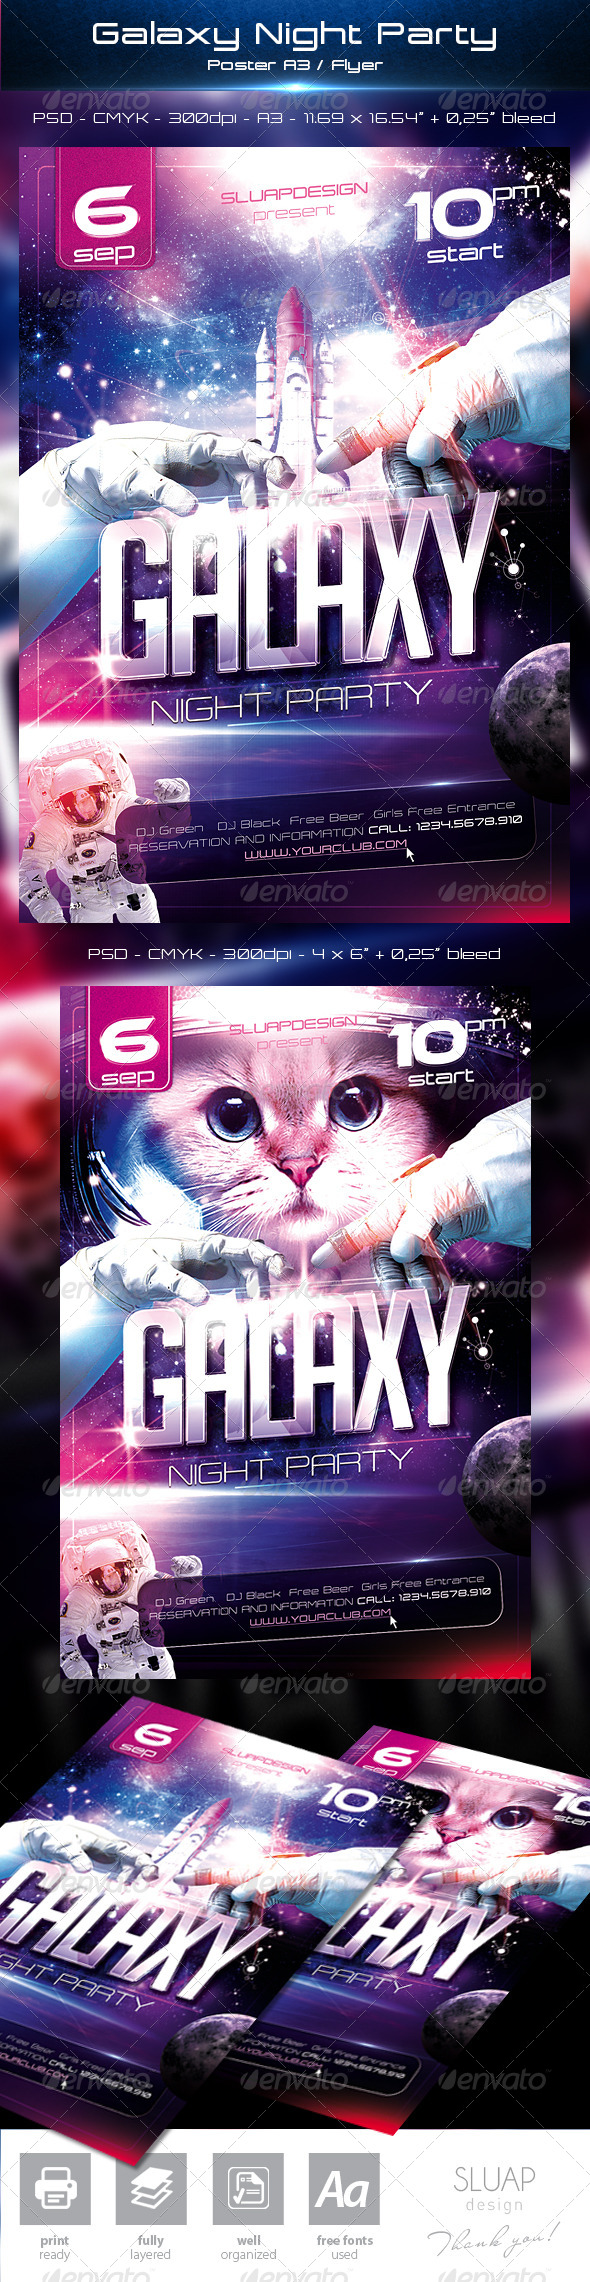 Galaxy Night Party Templates - Events Flyers